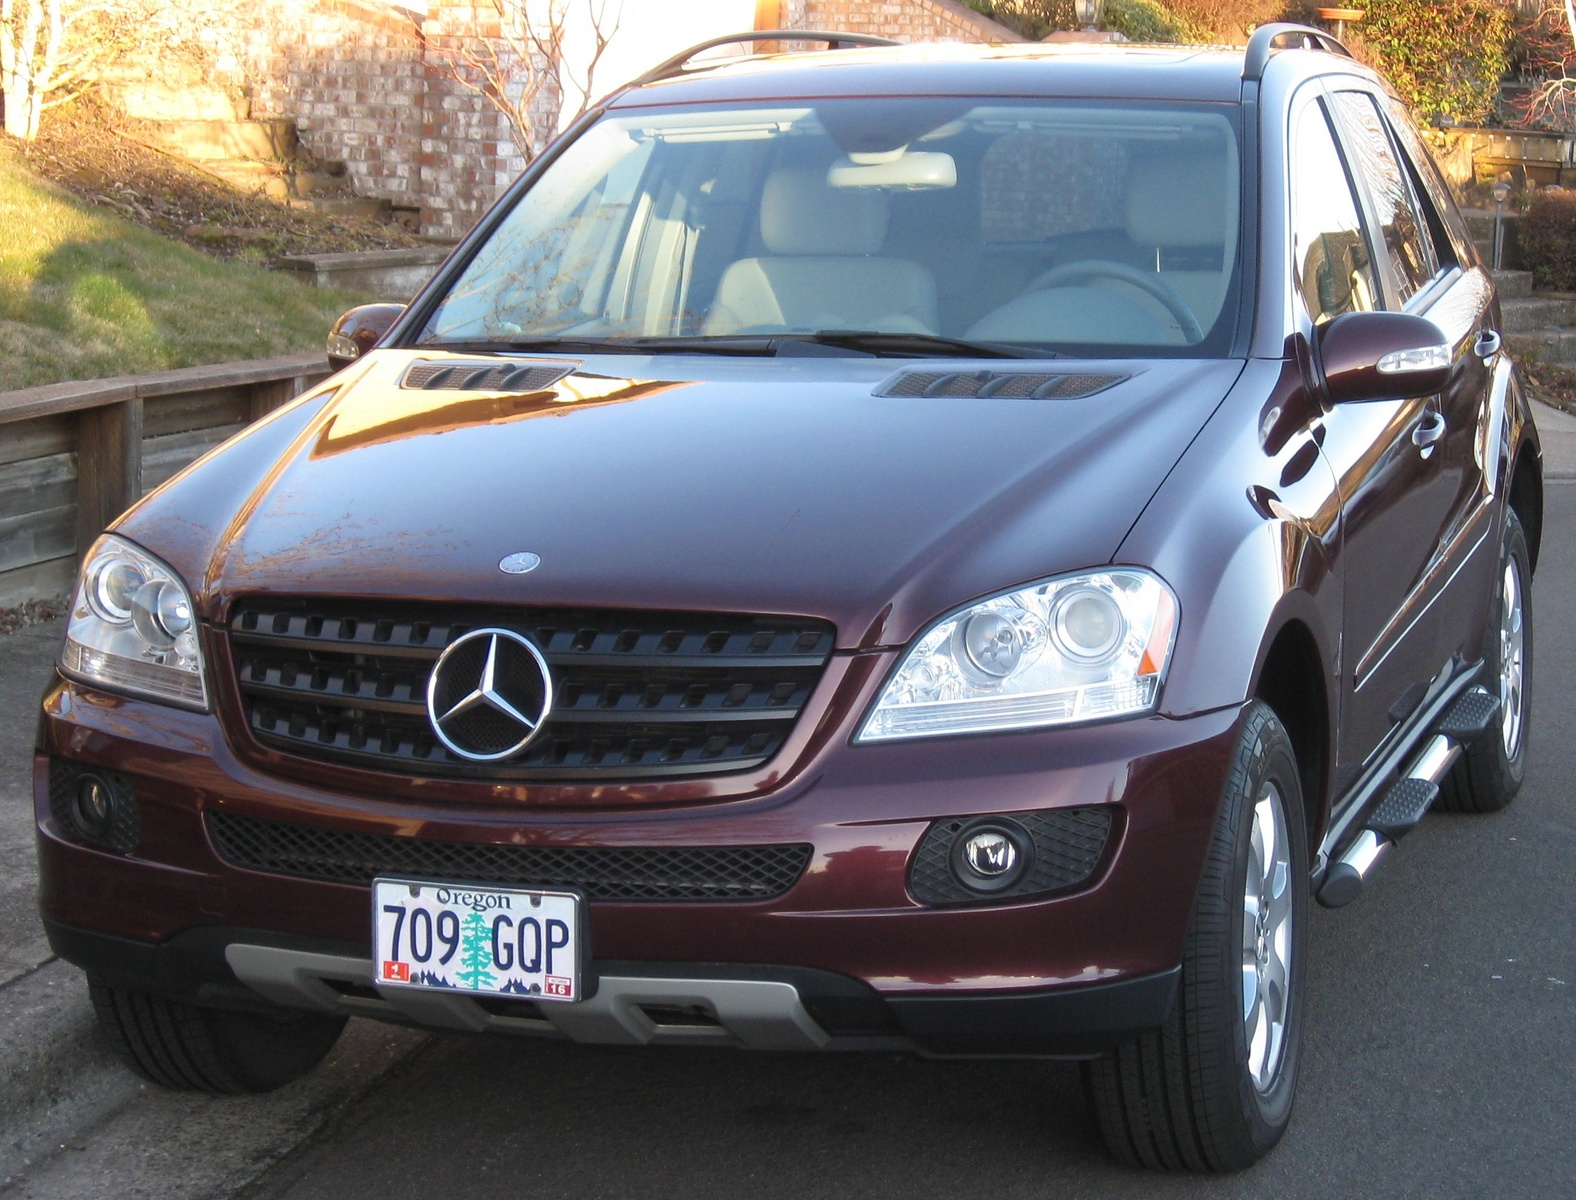 2006 mercedes benz m class exterior pictures cargurus for 2006 mercedes benz ml350 price